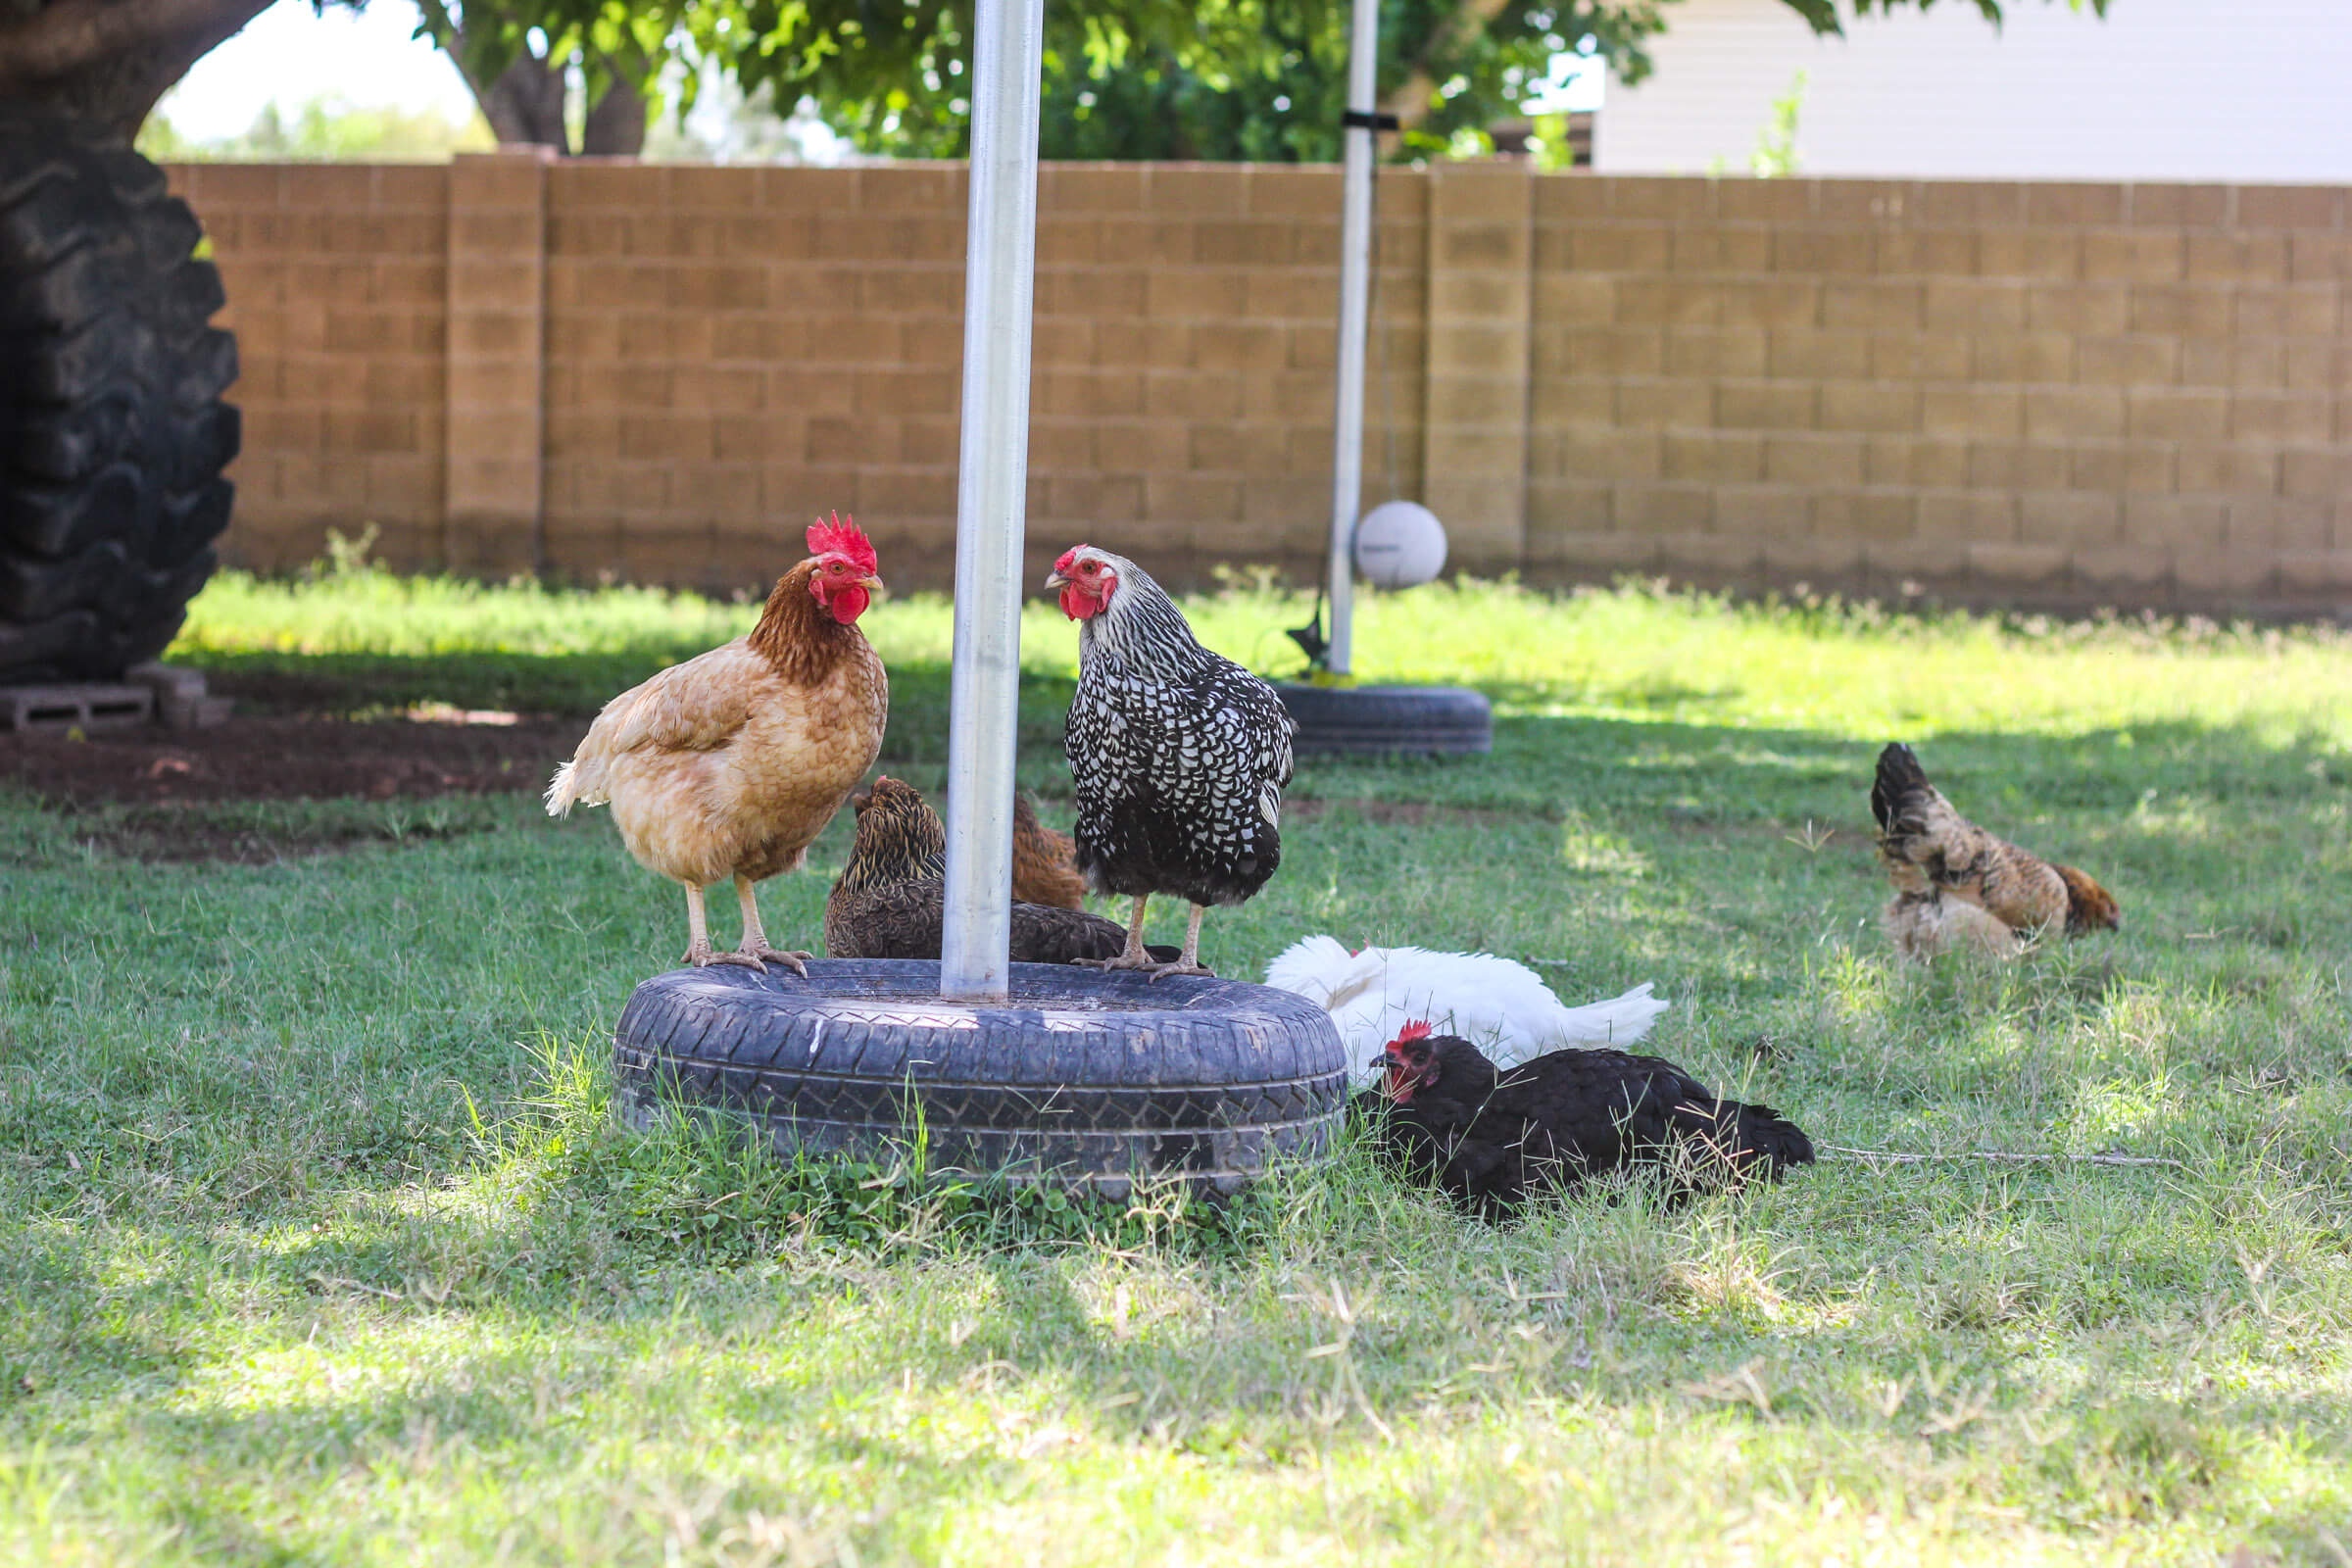 Chickens in pasture sitting on tires